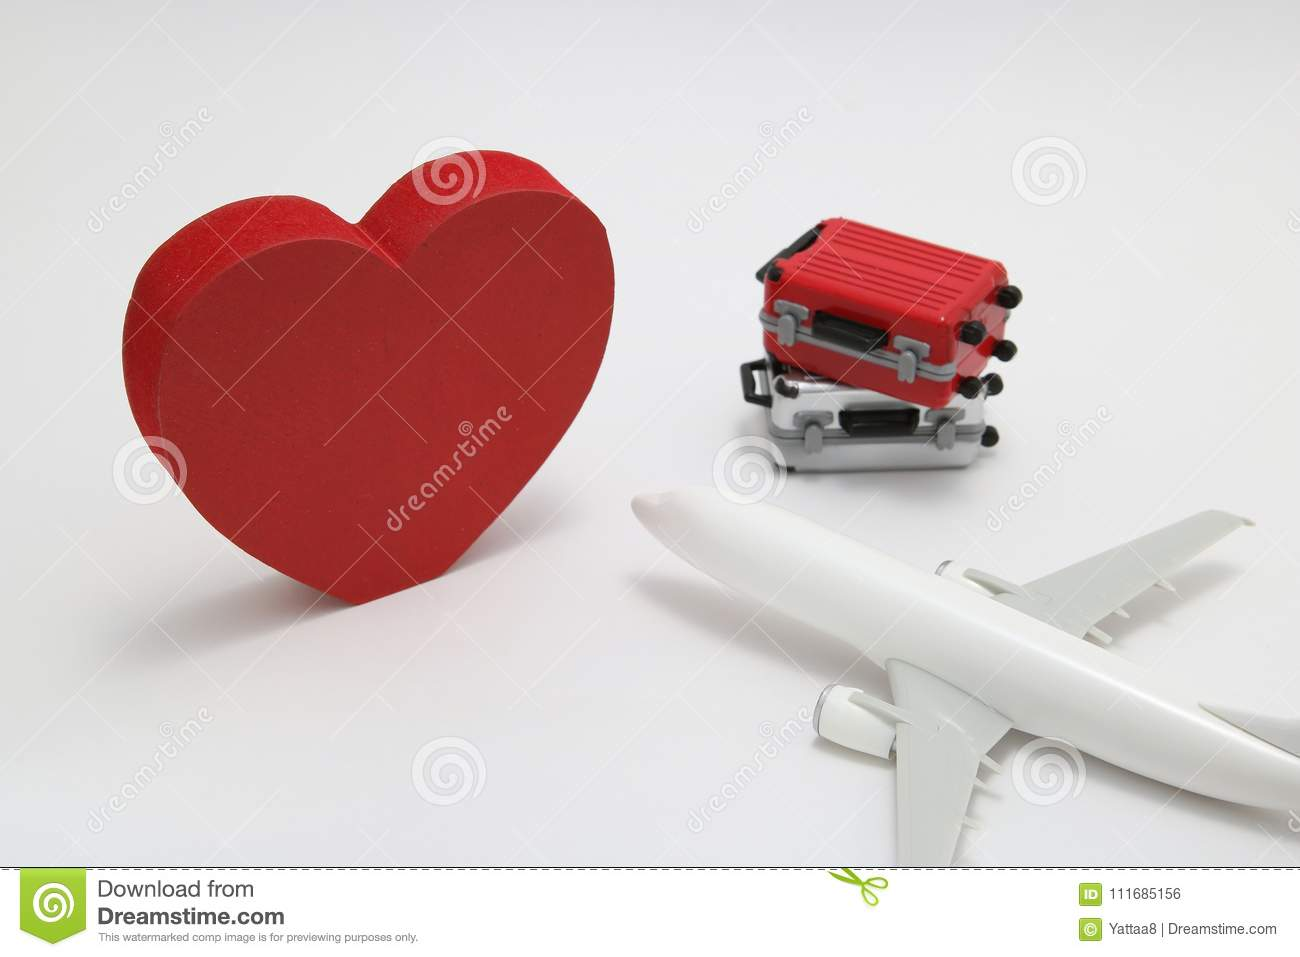 Miniature two suitcases, toy airplane, and a red heart on white background.